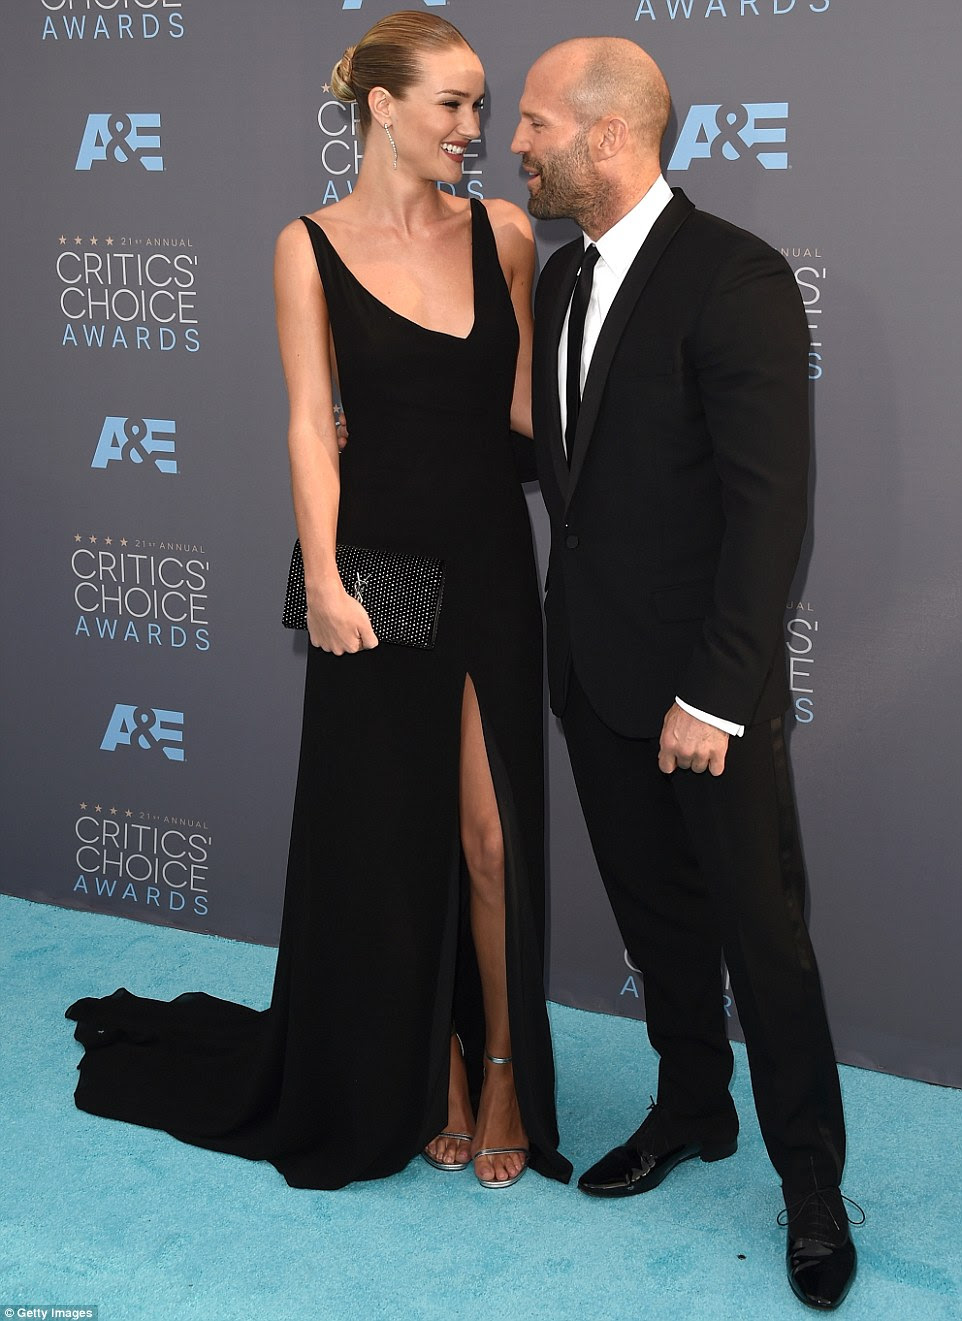 Still celebrating: The 28-year-old was there to support her new fiance Jason Statham, and the pair (both wearing Saint Laurent by Hedi Slimane) looked madly in love